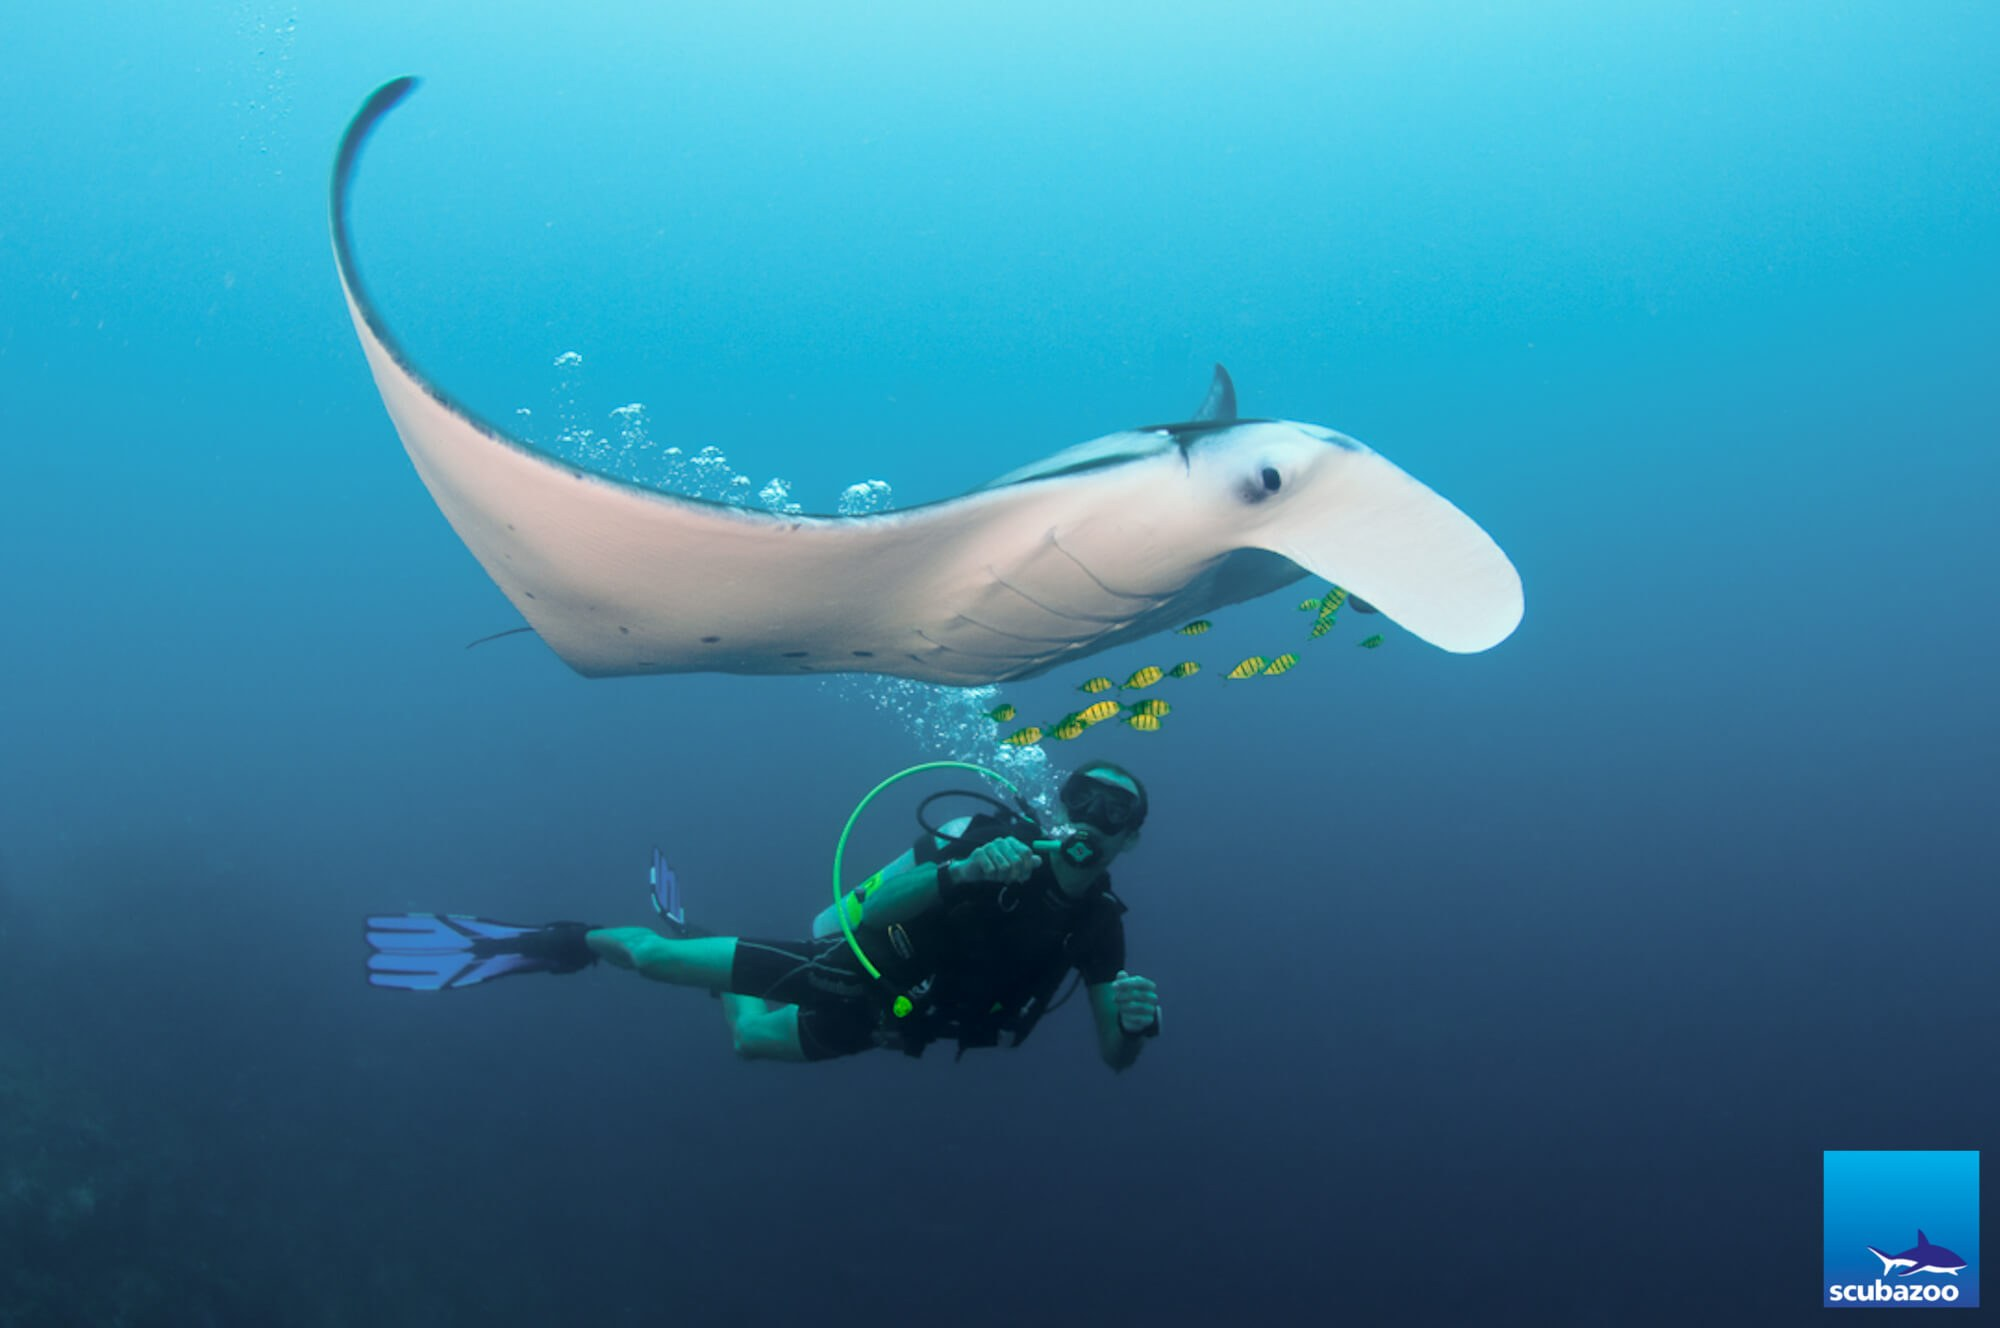 Maldives_Rasdhoo_Manta_Ray_Rescue-2.jpg#asset:1015